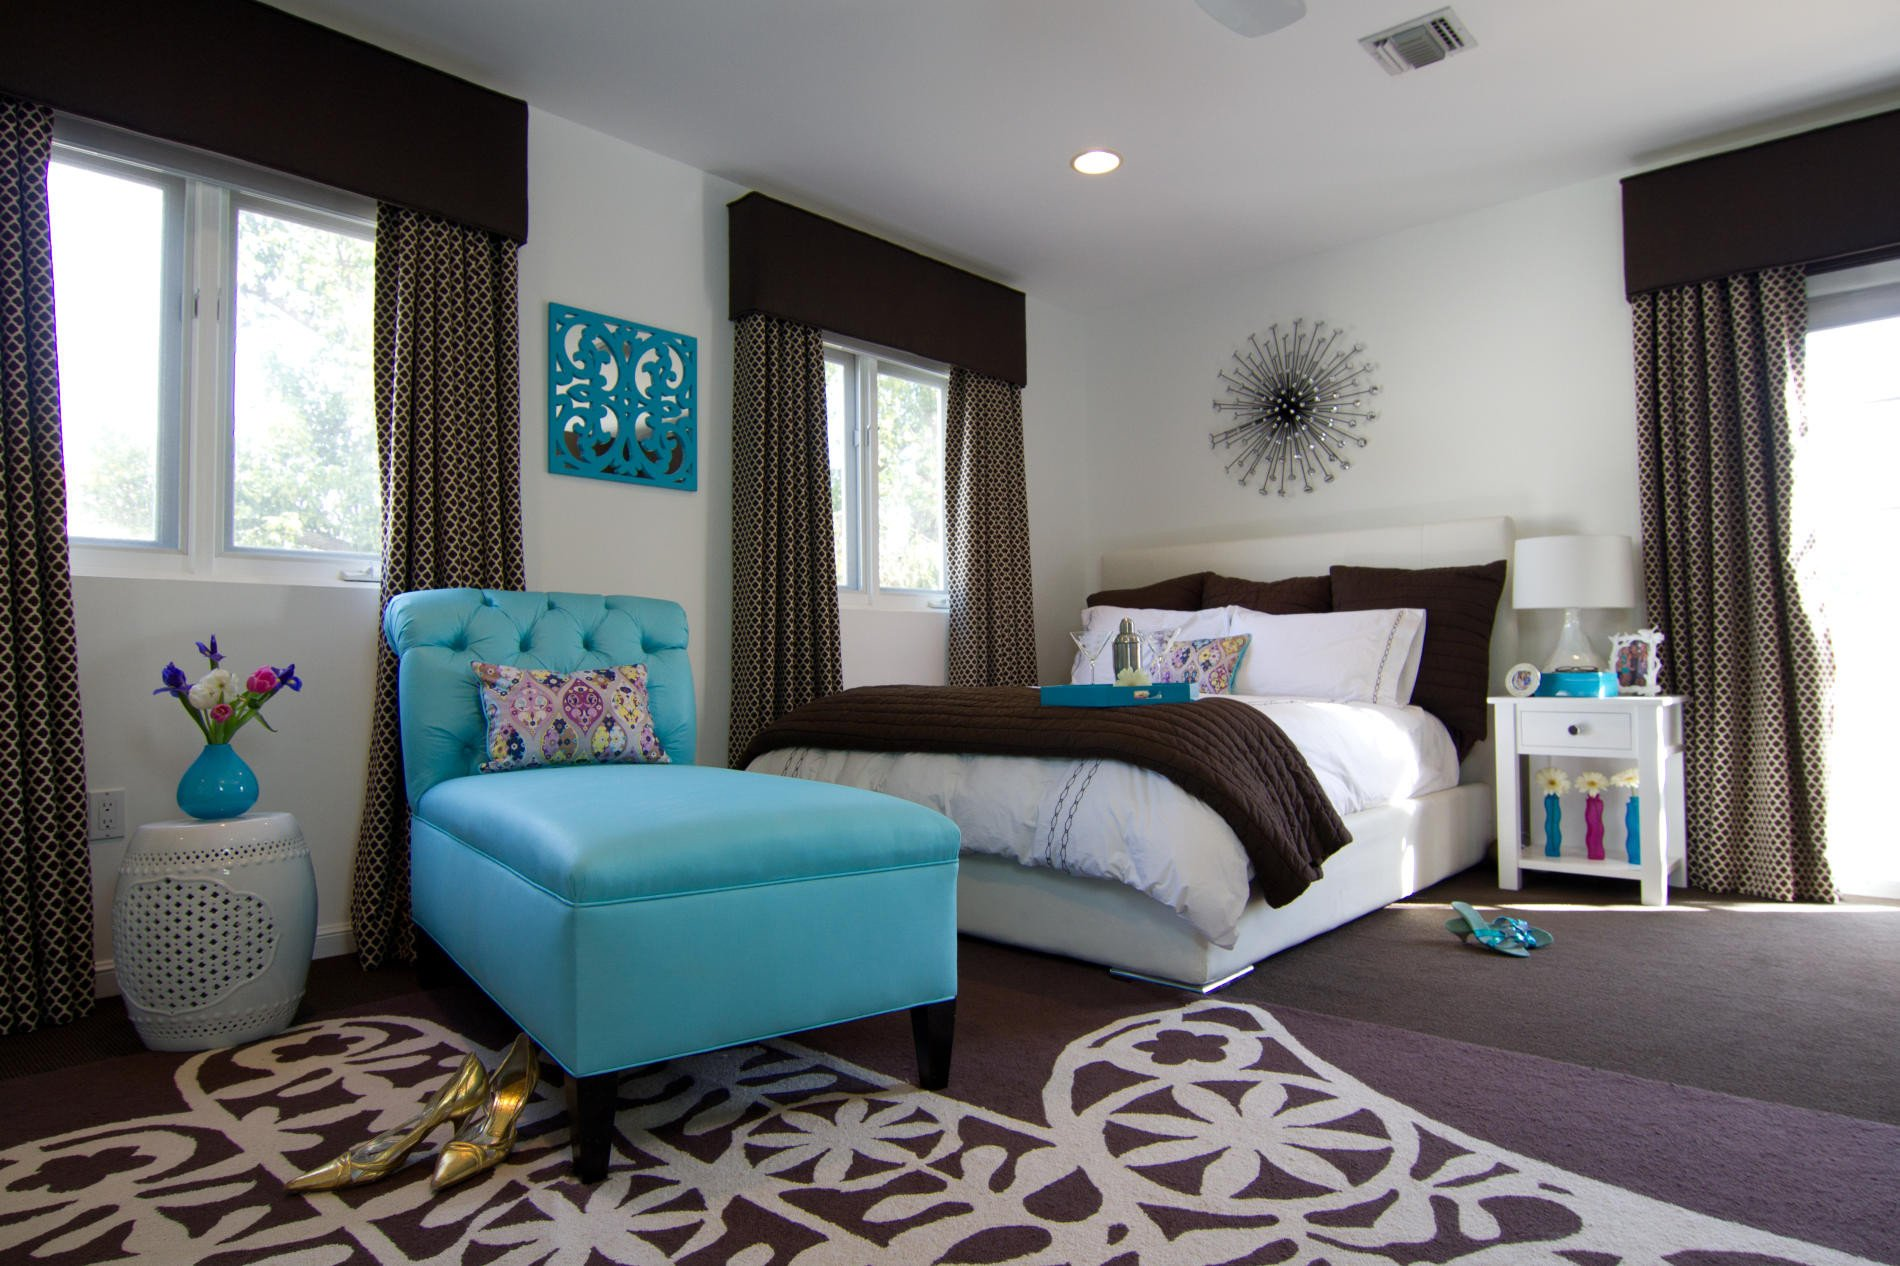 Turquoise and Brown Home Decor Luxury Make Your Bedroom A Romantic Haven Part 4